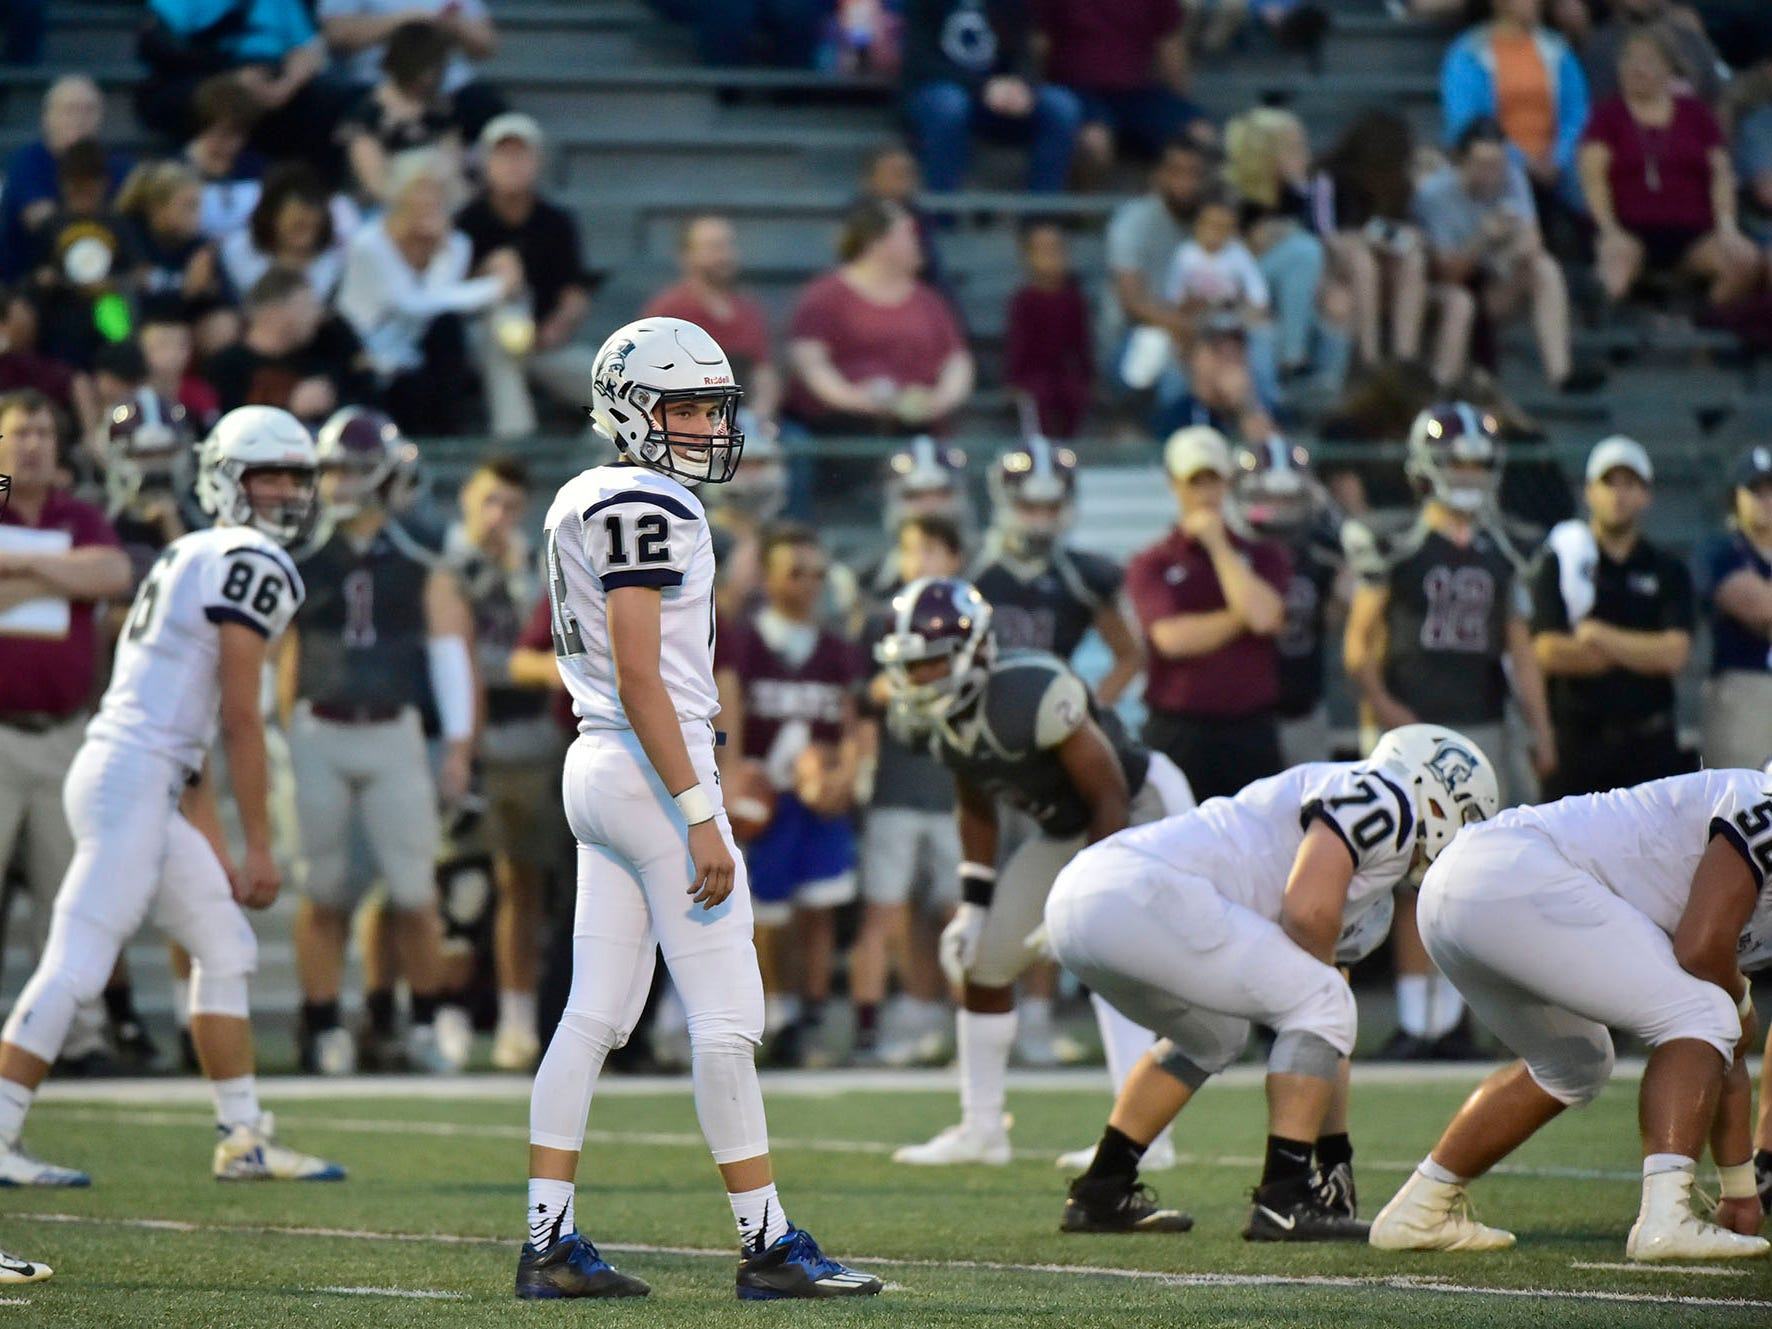 Trojan QB Brady Stumbaugh (12) checks his offense. Chambersburg, 4-0 suffered their first loss of the season against undefeated State College in PIAA road game on Friday, Sept. 21, 2018.